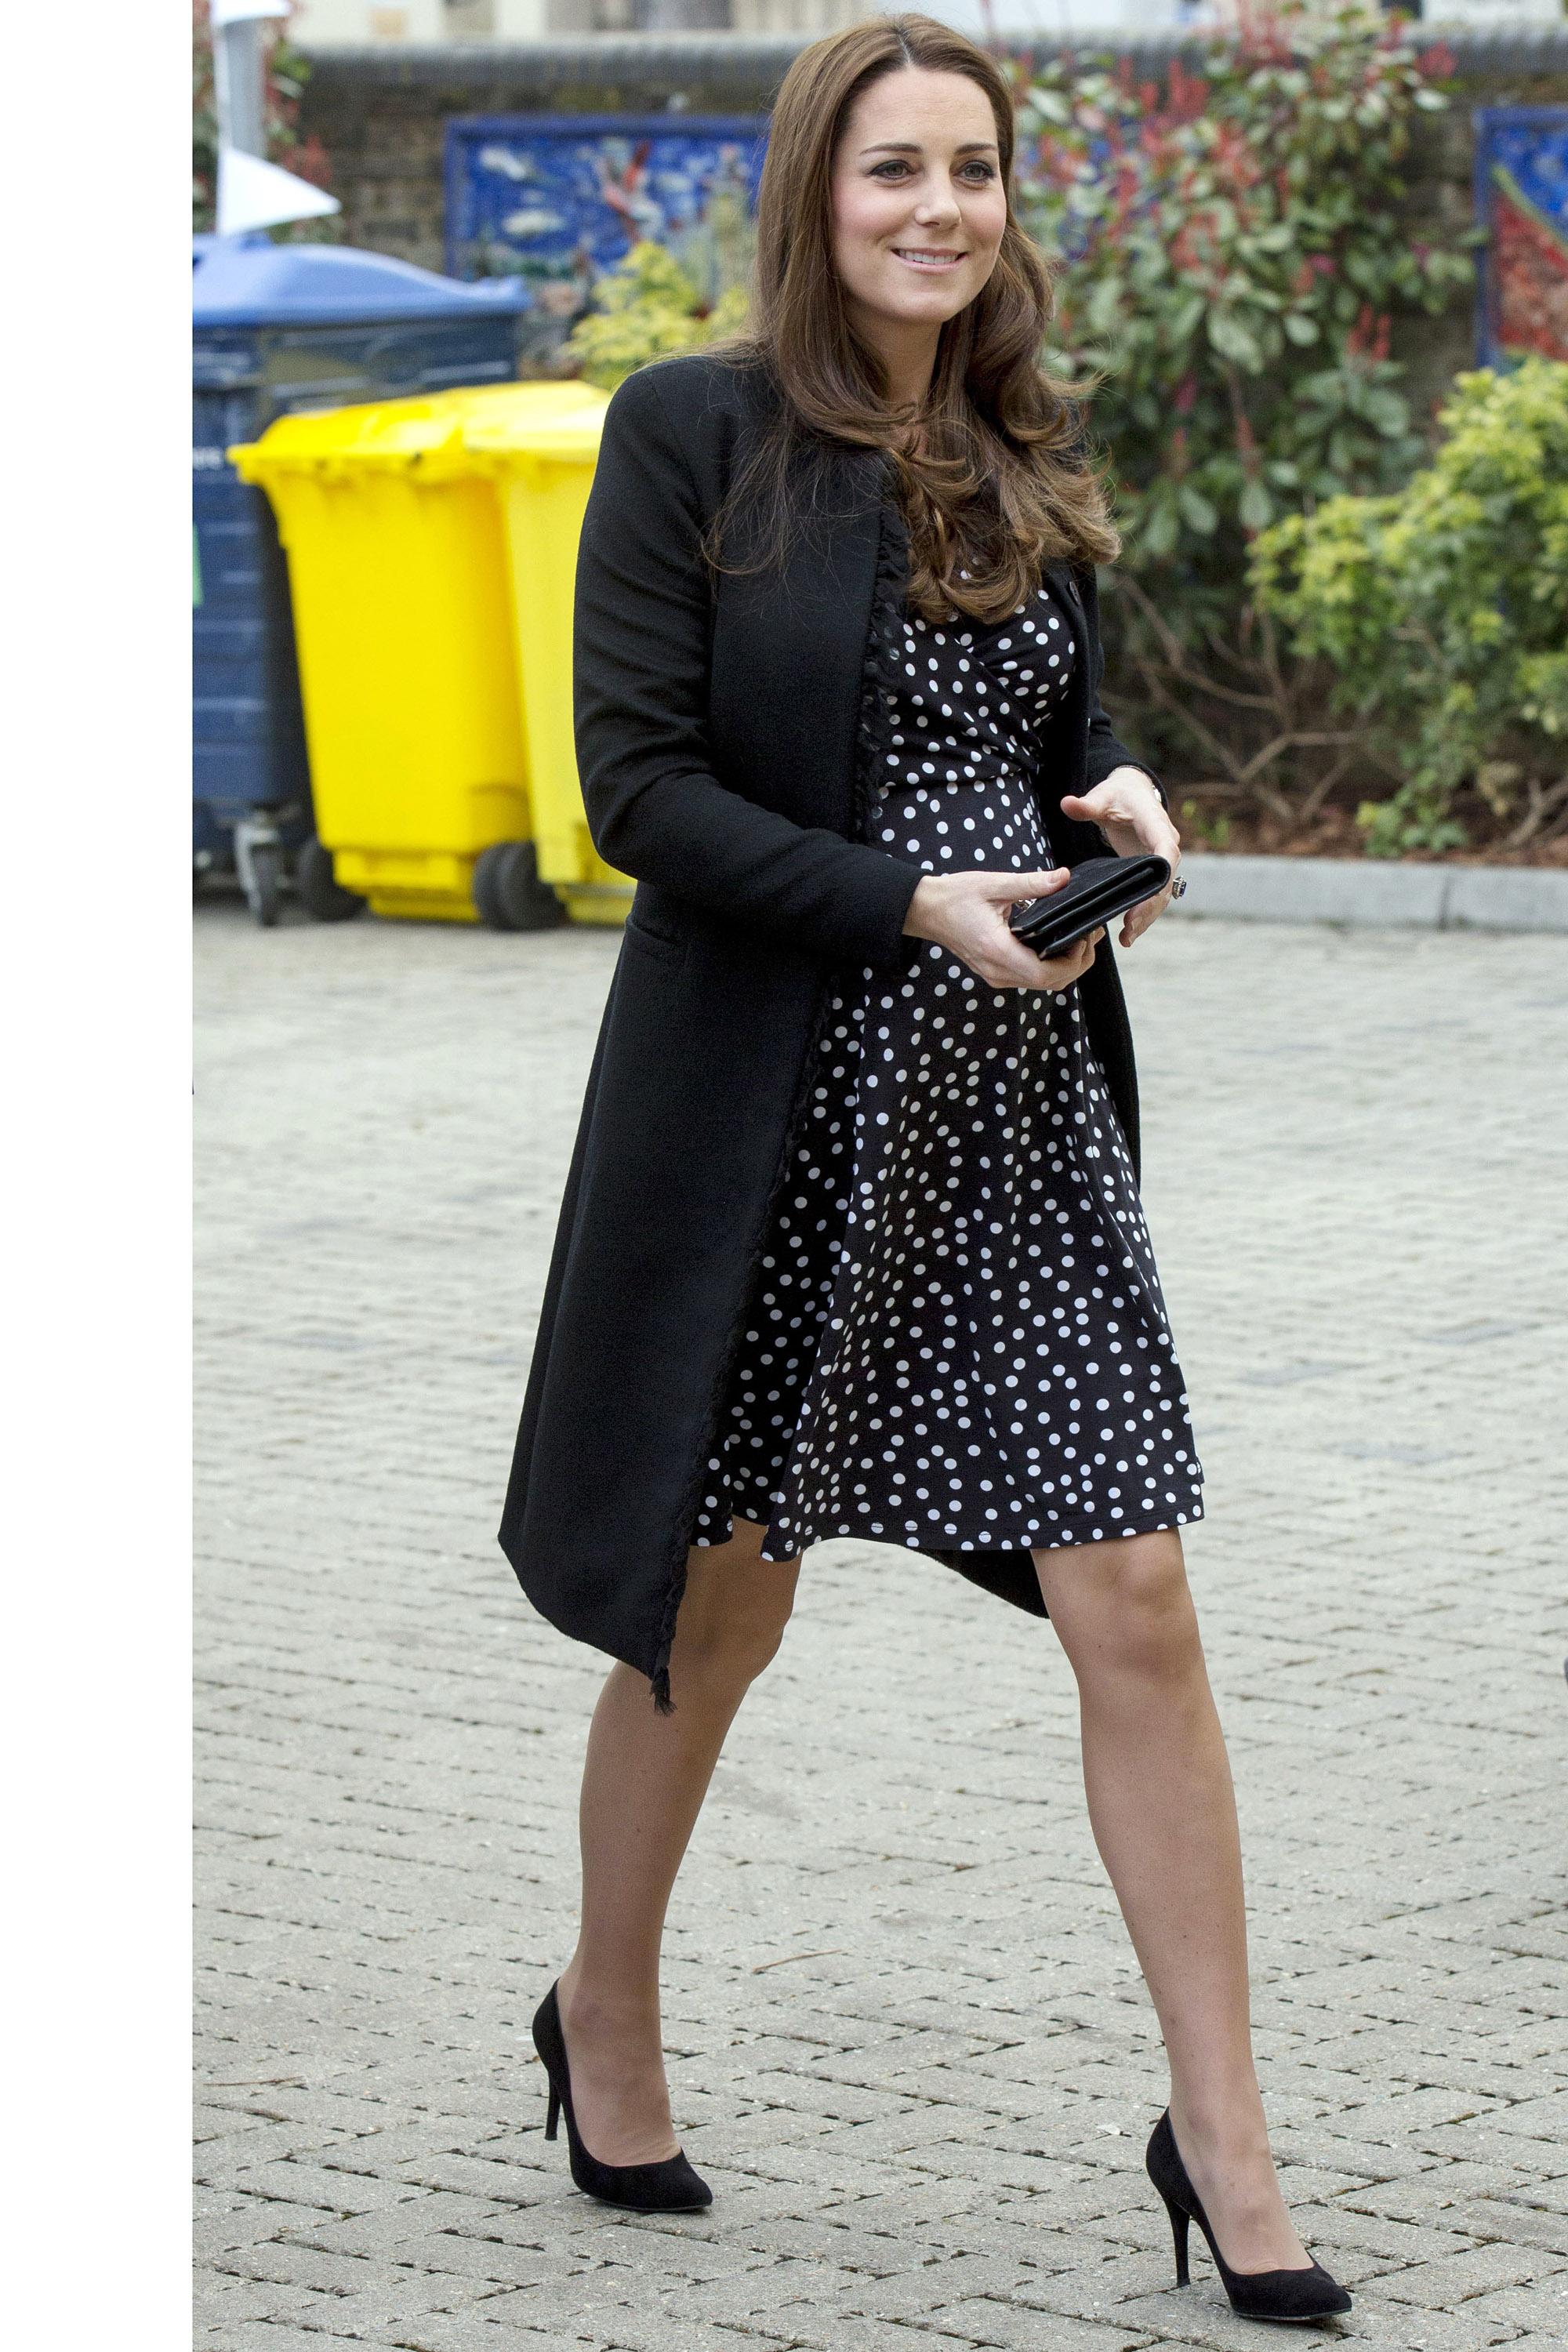 Kate Middleton Last Public Appearance Before Royal Baby Arrives Duchess Of Cambridge Maternity